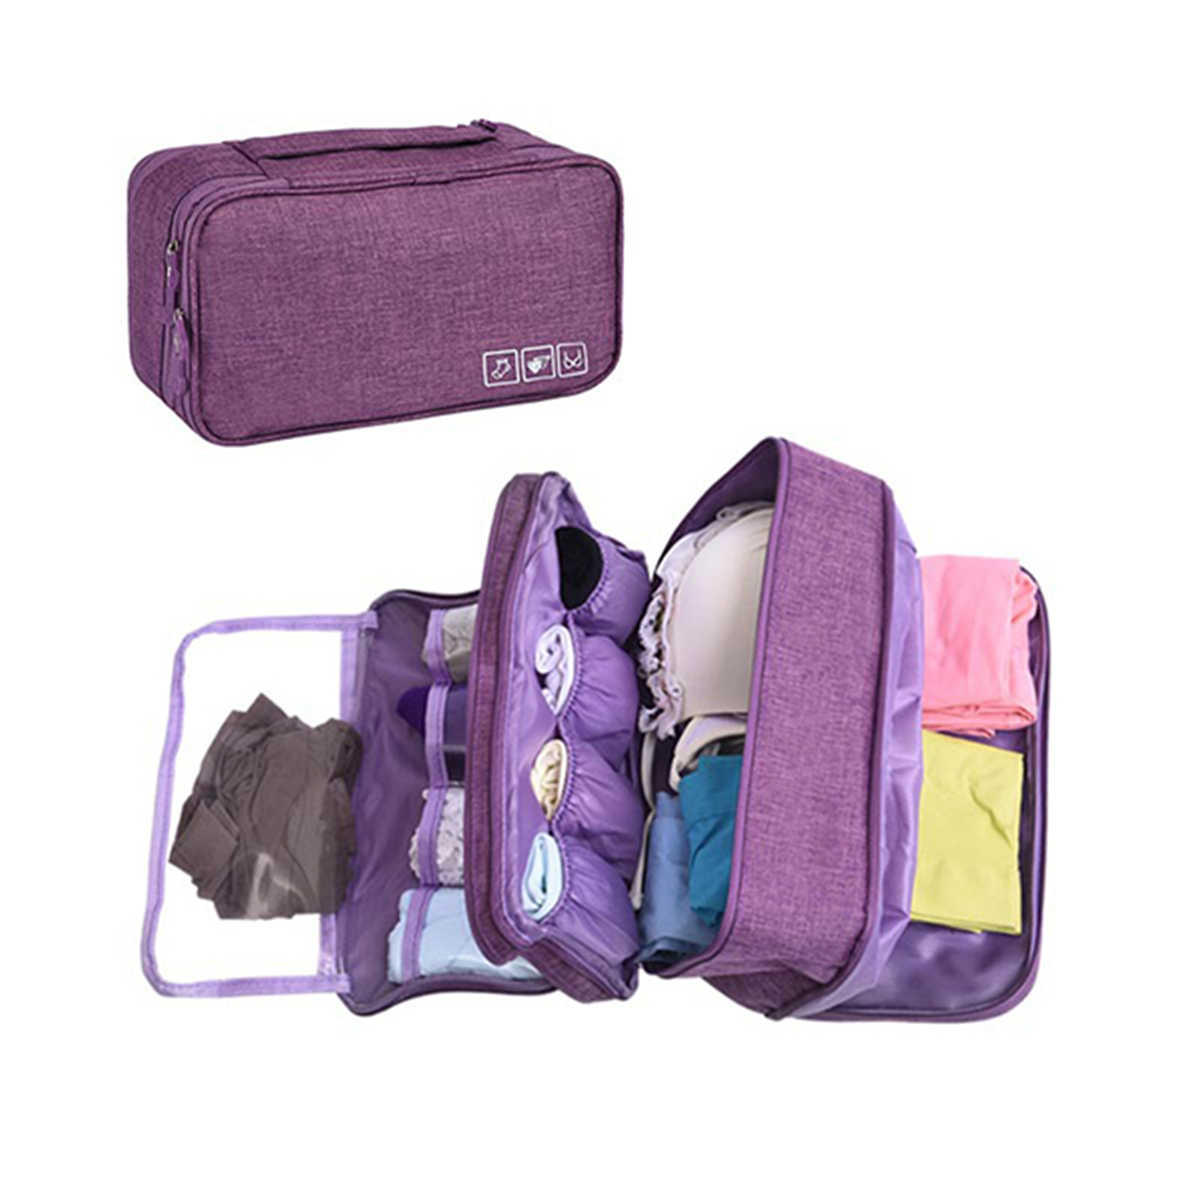 Waterproof Underwear Bra Storage Cases Travel Bag Clothes Socks Luggage Clothes Organizer Holder Case Cosmetic Makeup Container